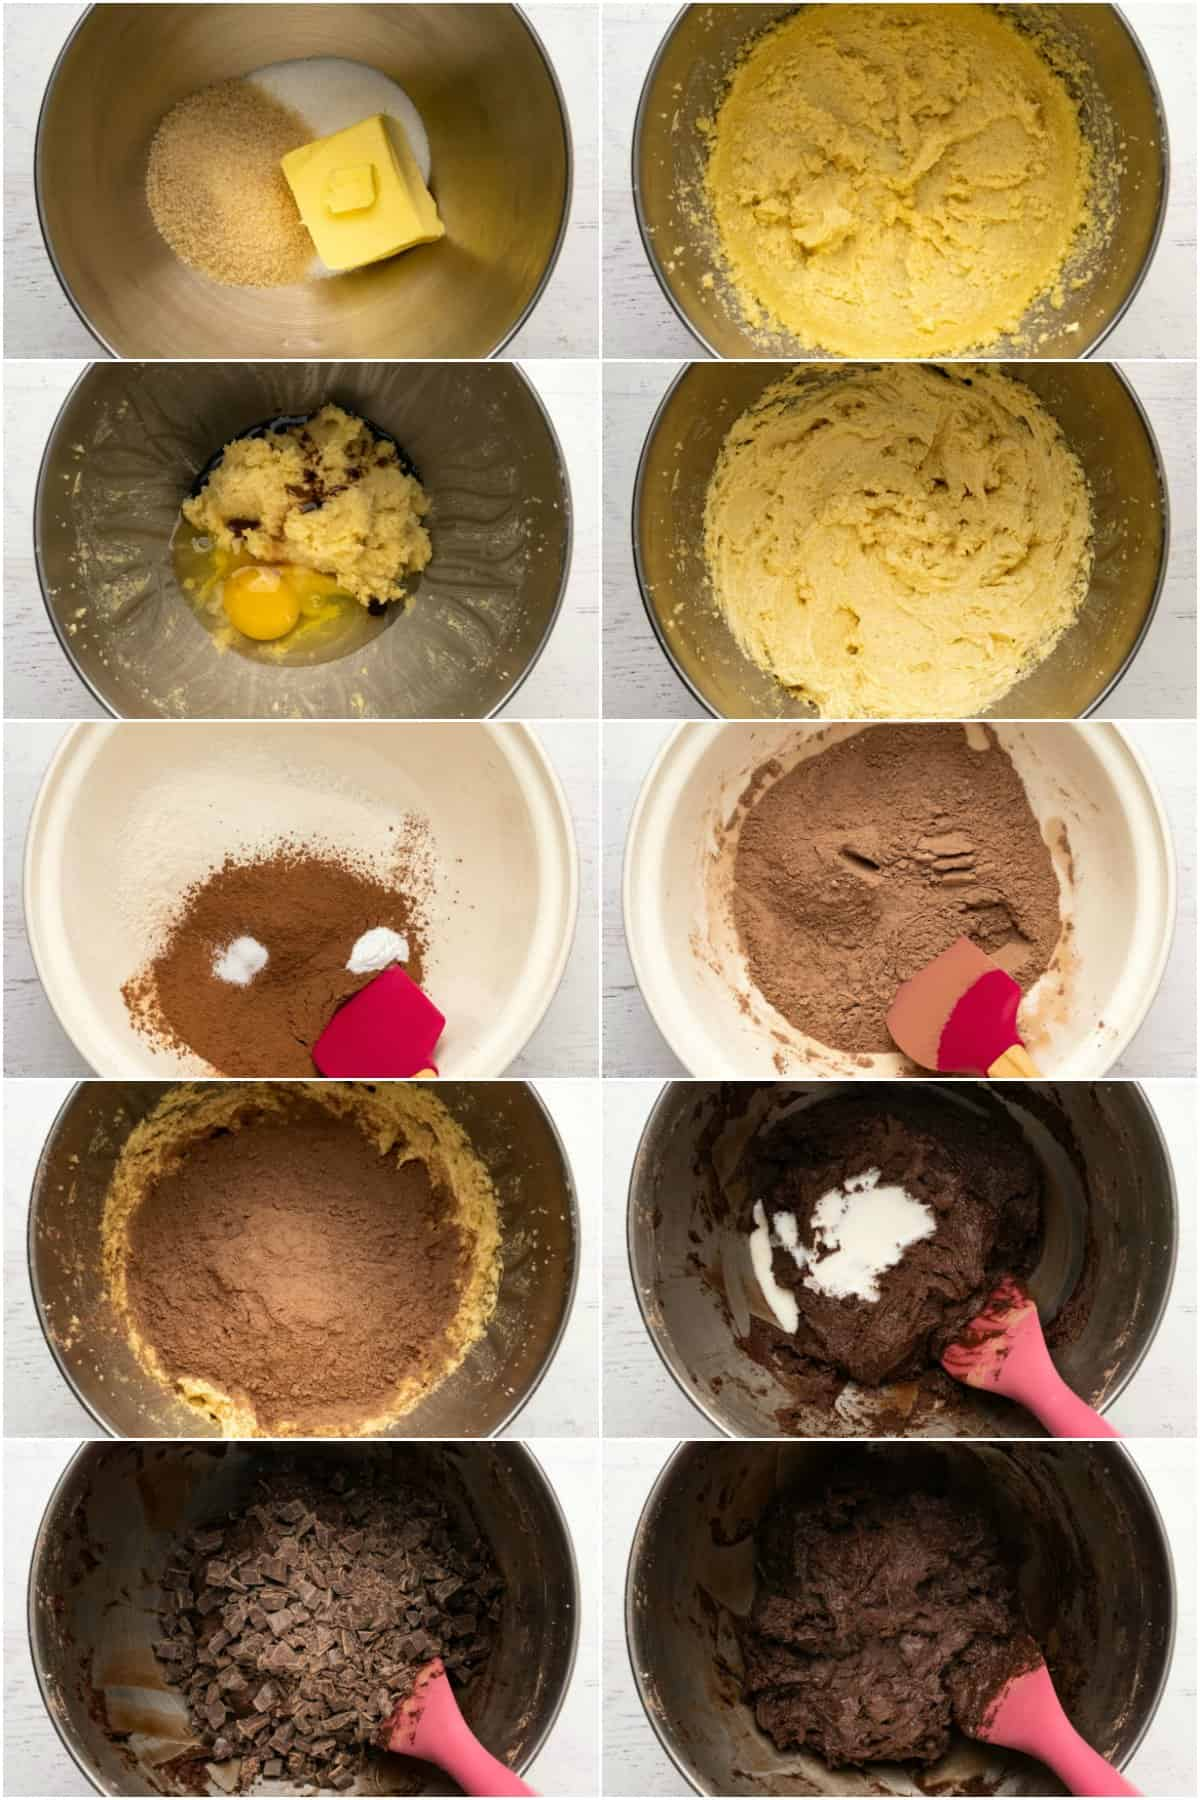 Step by step process photo collage of making chocolate cookies.